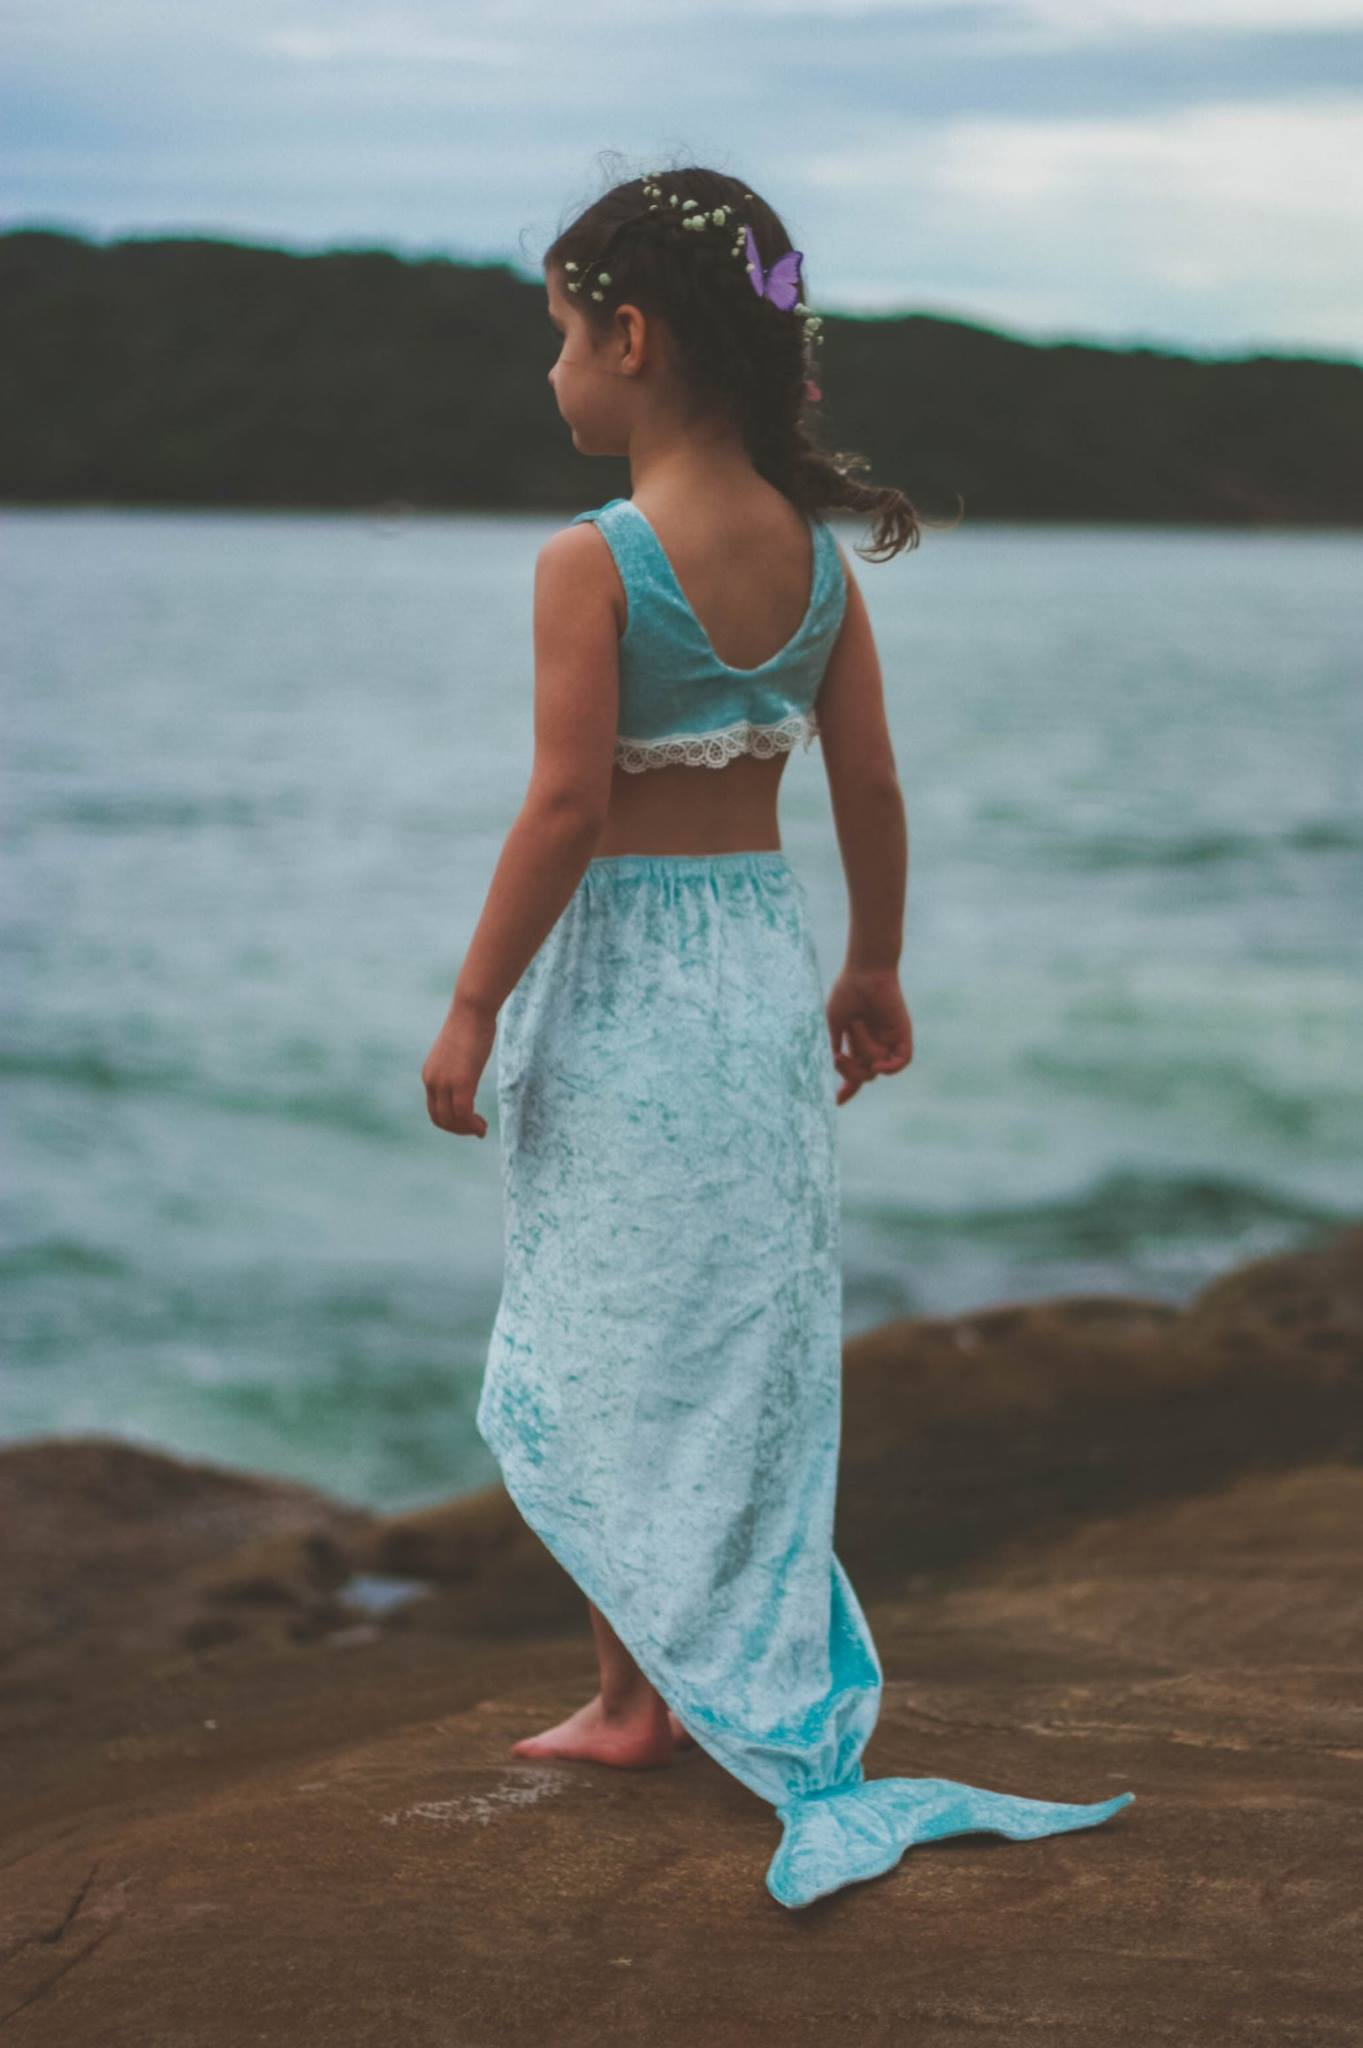 Mermaid Tail Sewing Pattern Magnificent Inspiration Design